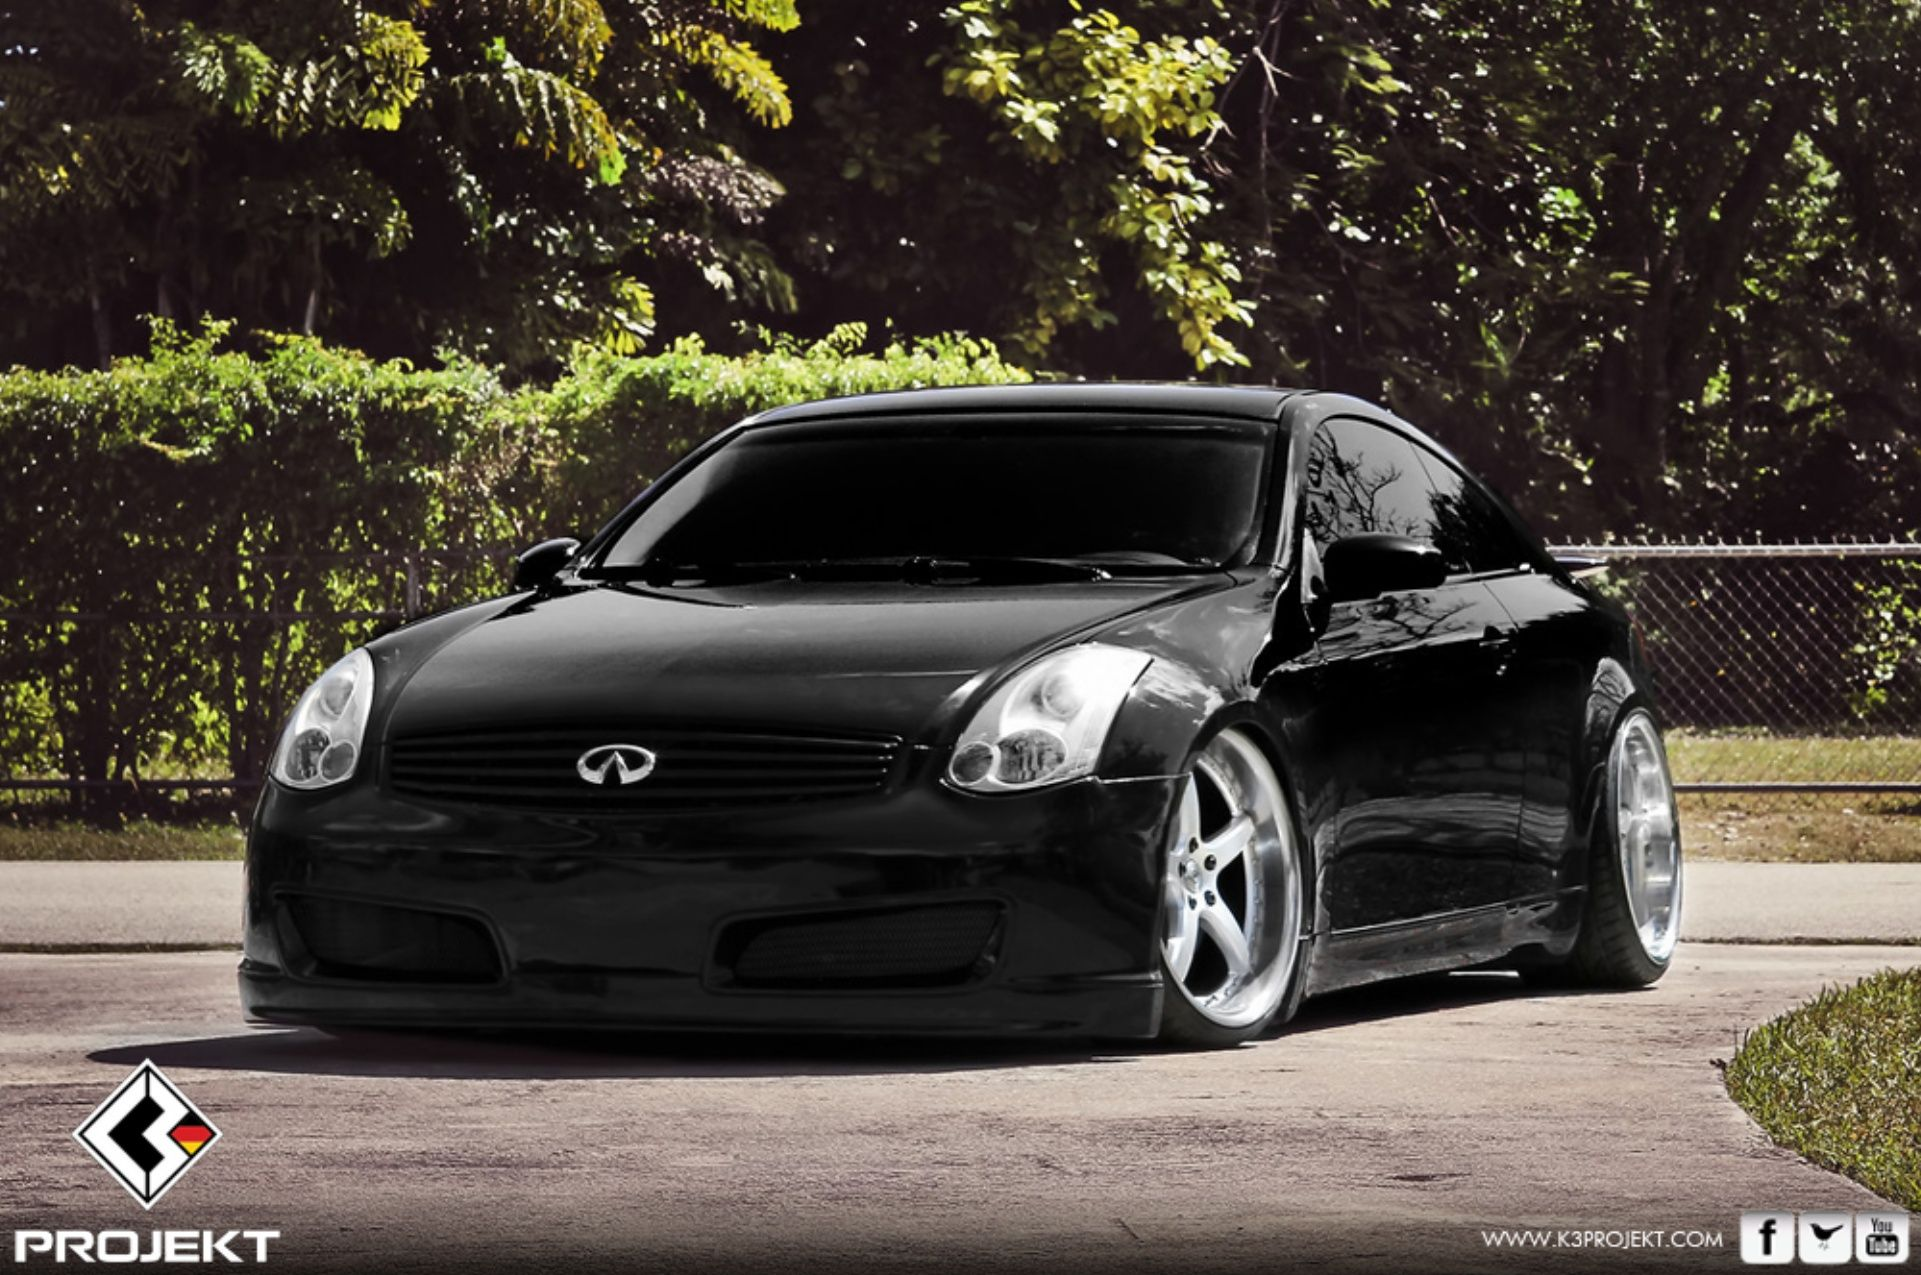 infiniti g35 coupe  Google Search  Things that go vroom